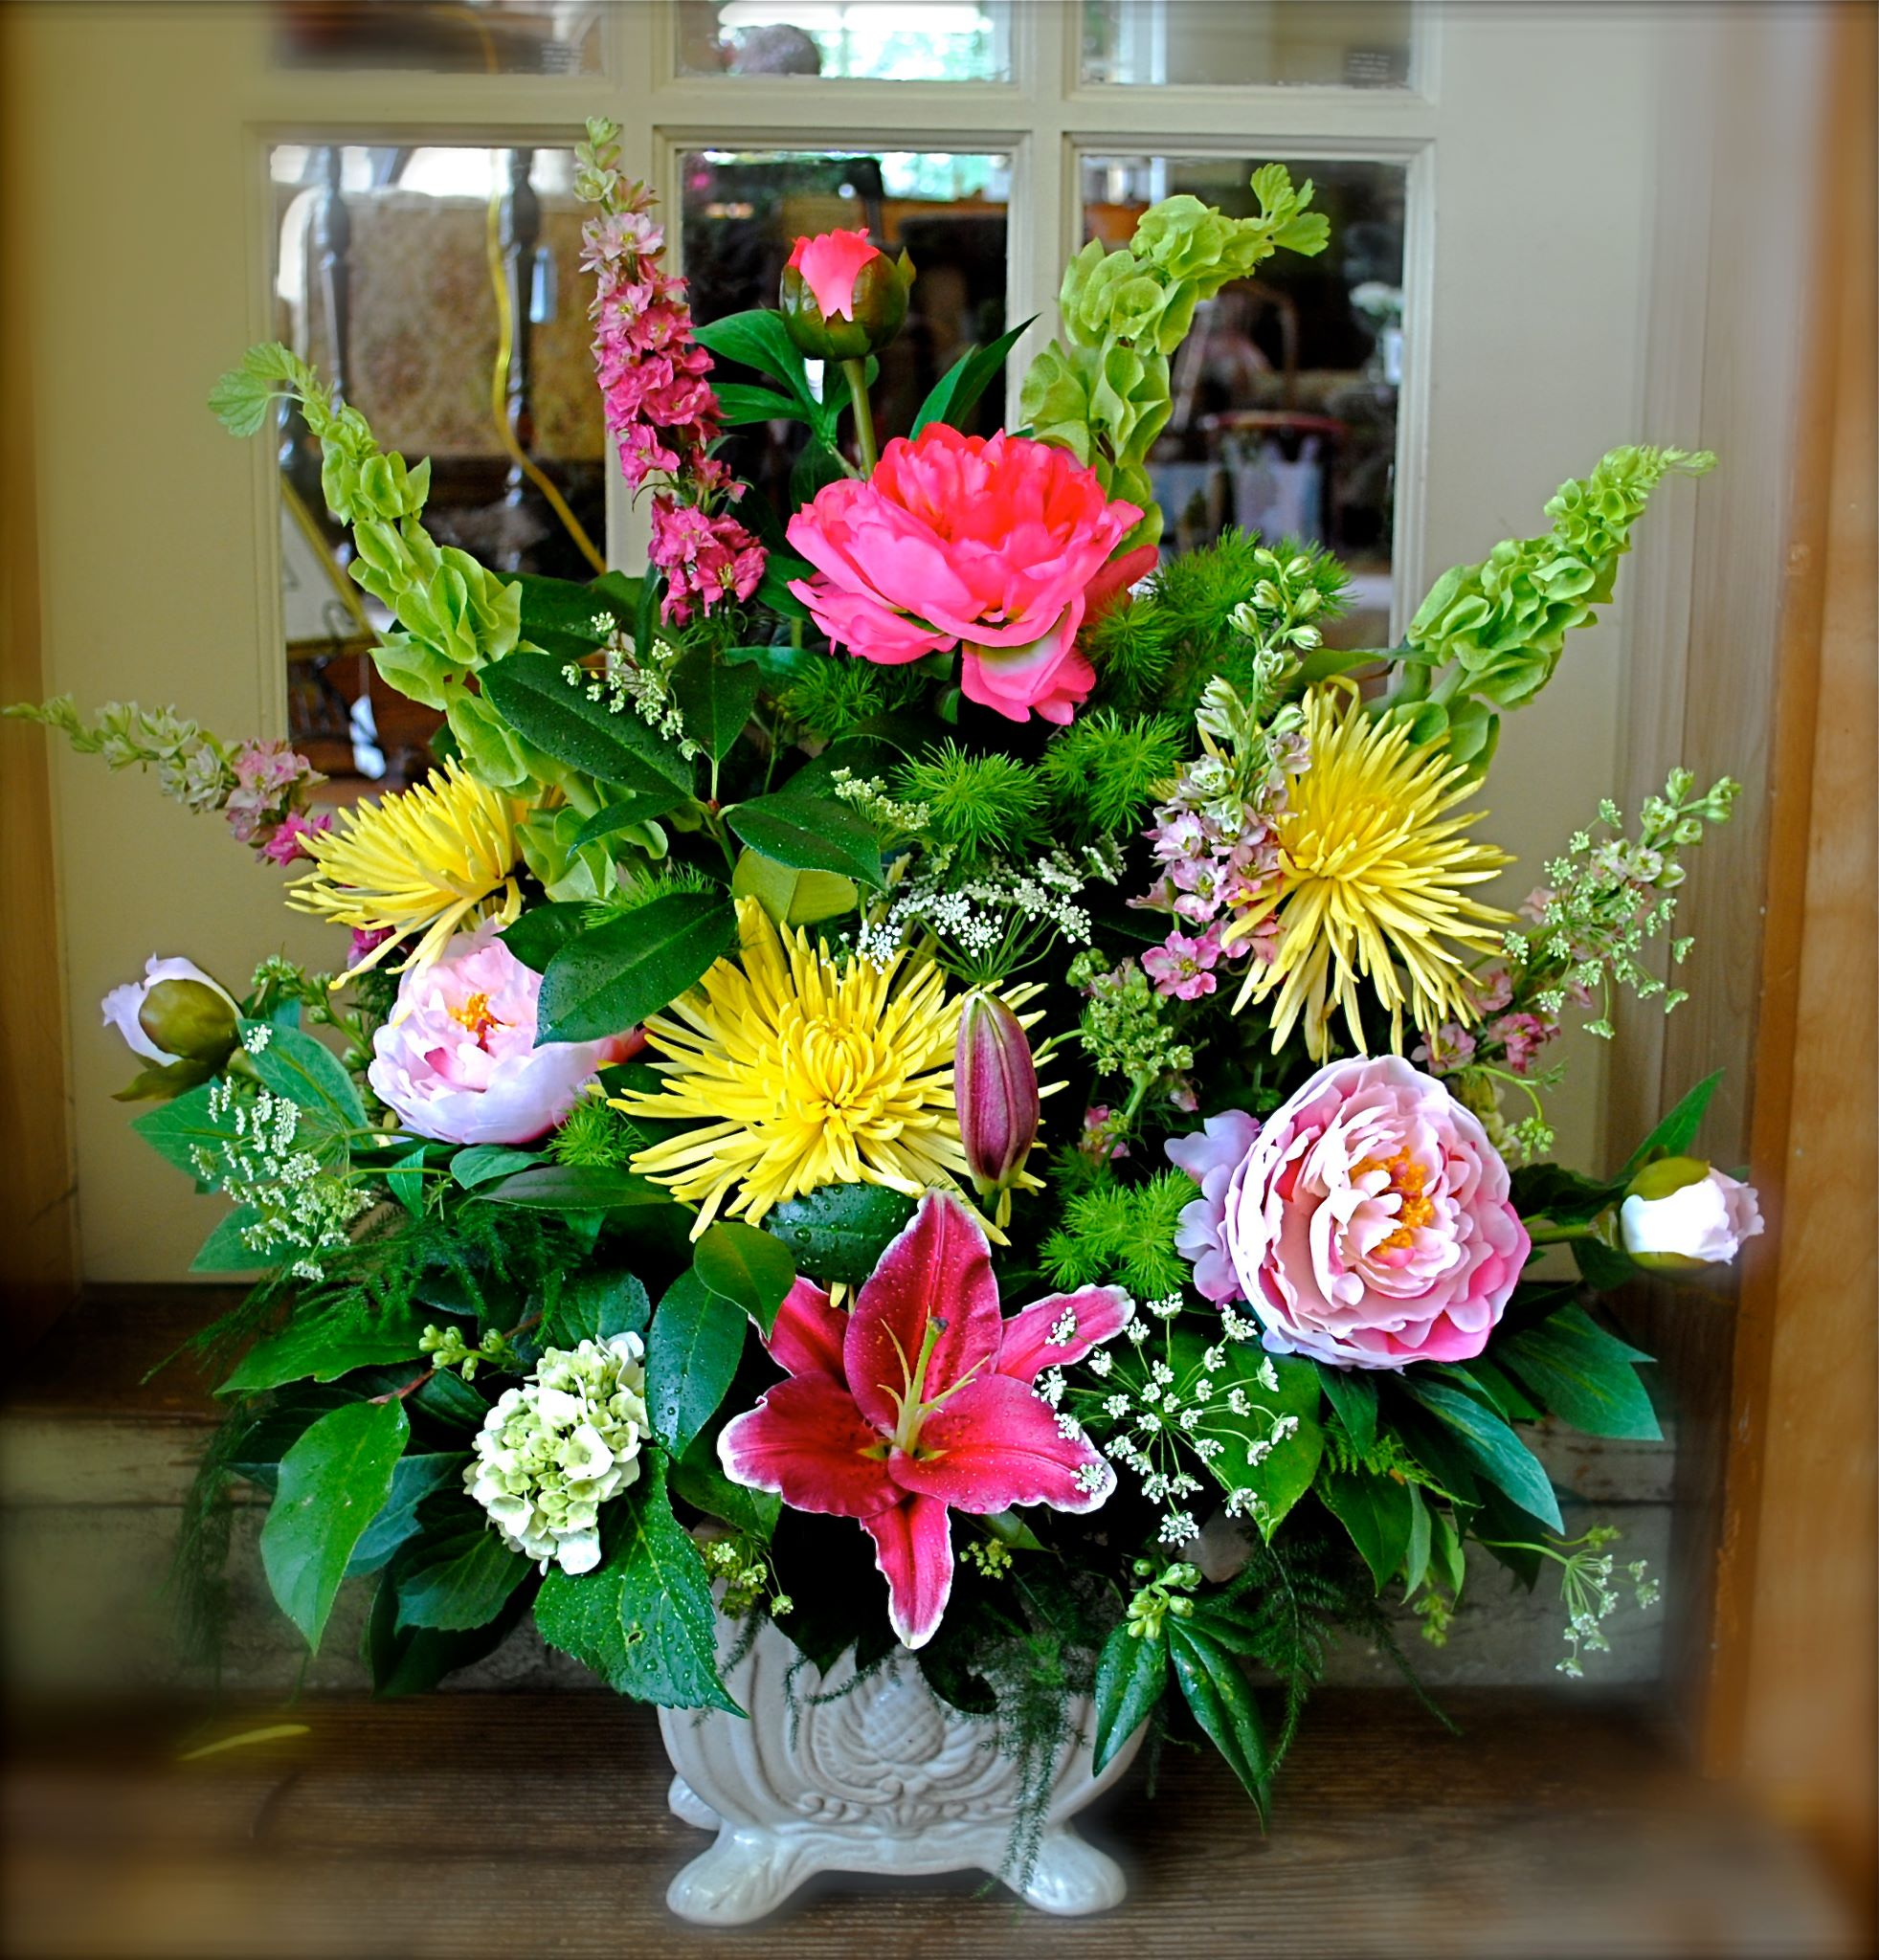 A Vibrant Summertime Arrangement